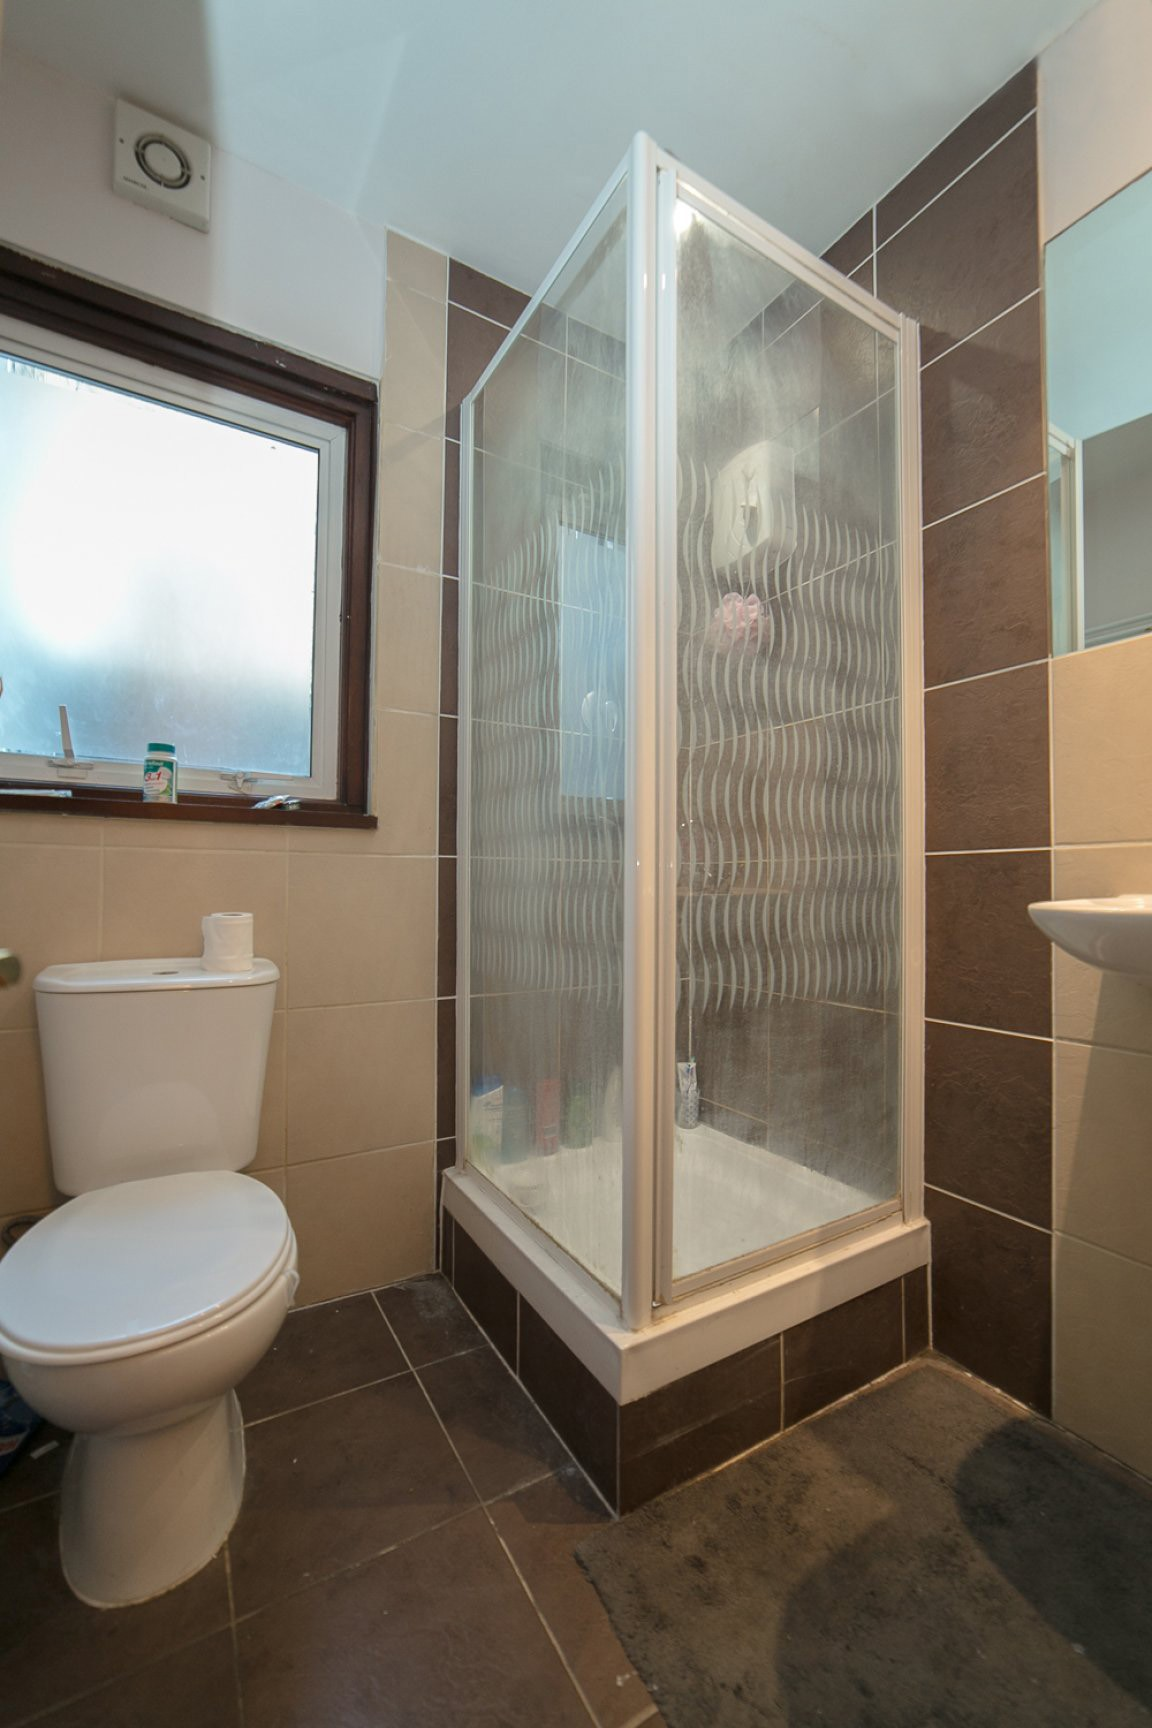 Photo 4, Single room - ALLOA 15 in London